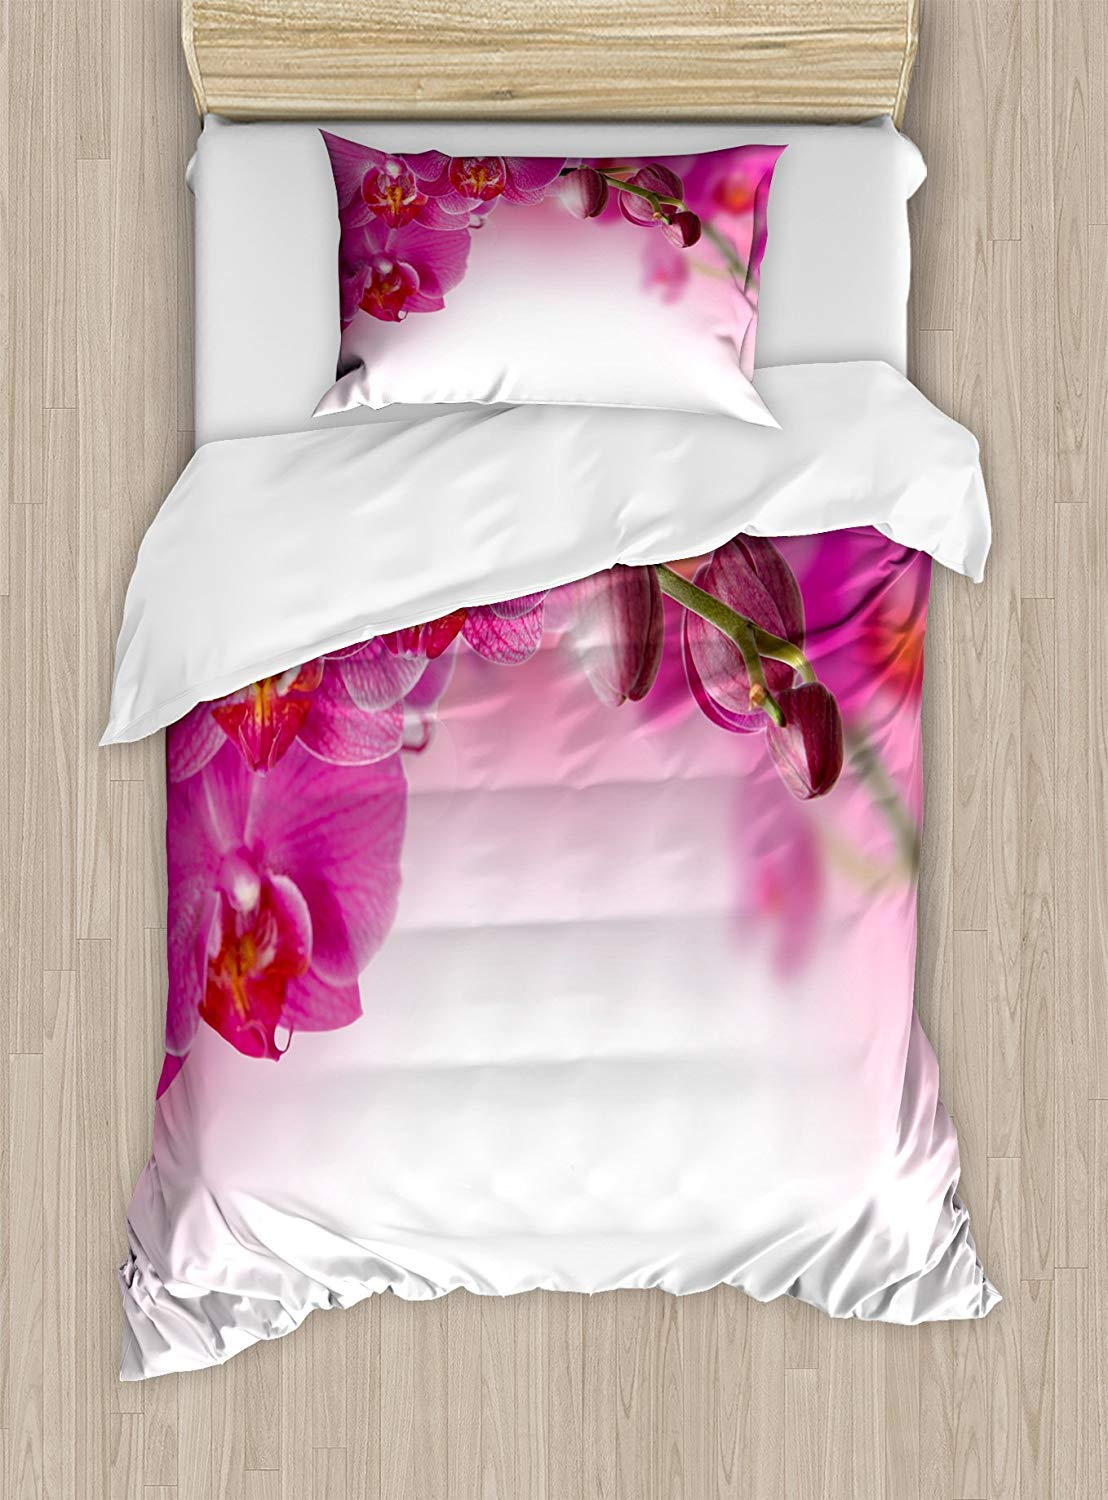 Big buy store Spa Duvet Cover, Blossoming Orchid Branch Exotic Nature with Feng Shui Elements Spa Zen Garden Botany, Decorative 4 Piece Bedding Set with 2 Pillow Sham, Multicolor(Twin)